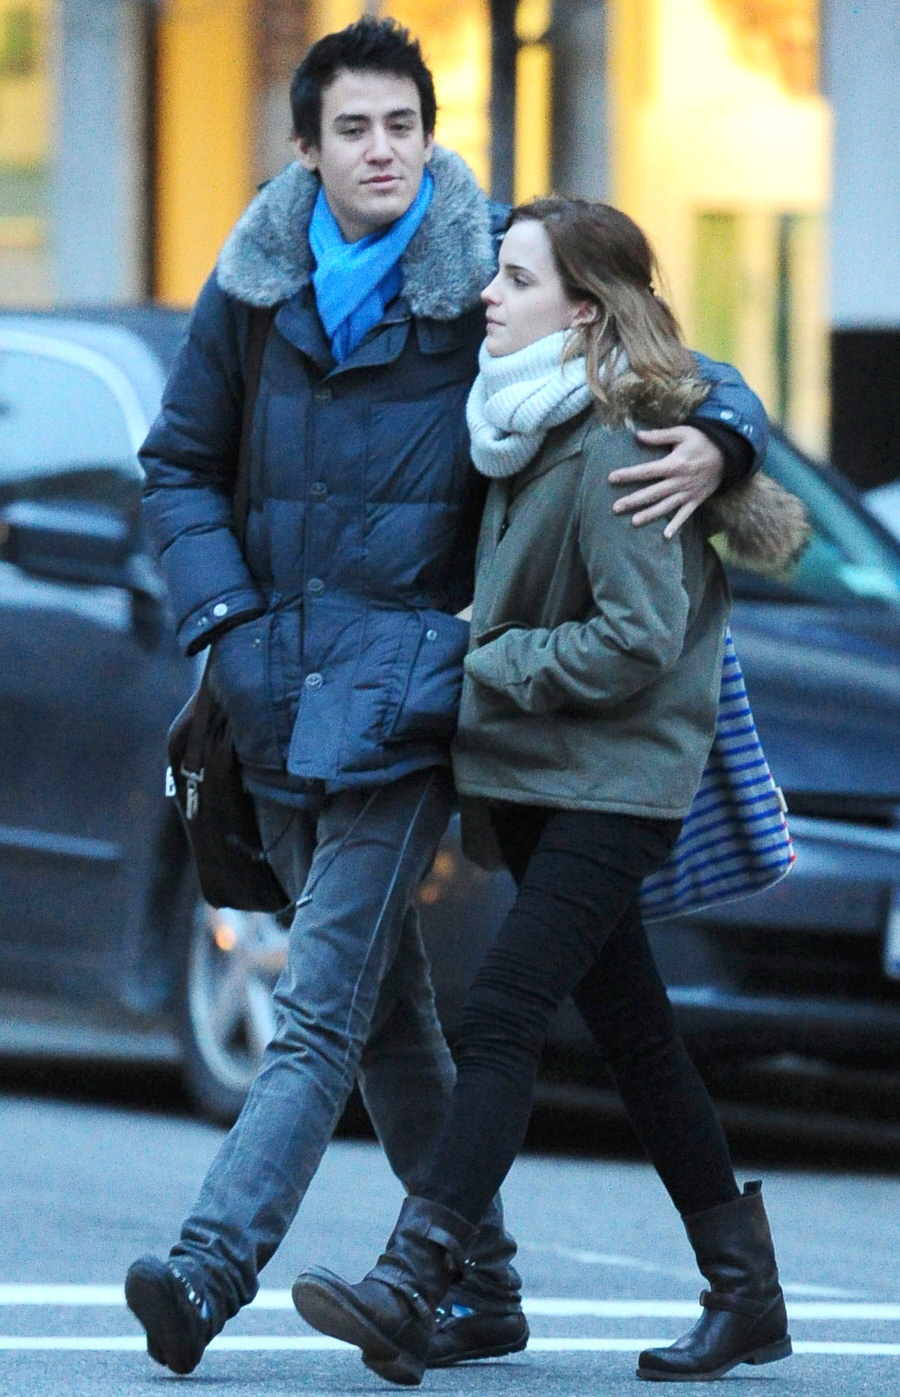 Emma Watson With Boyfriend New Pictures 2013 | Its All ...